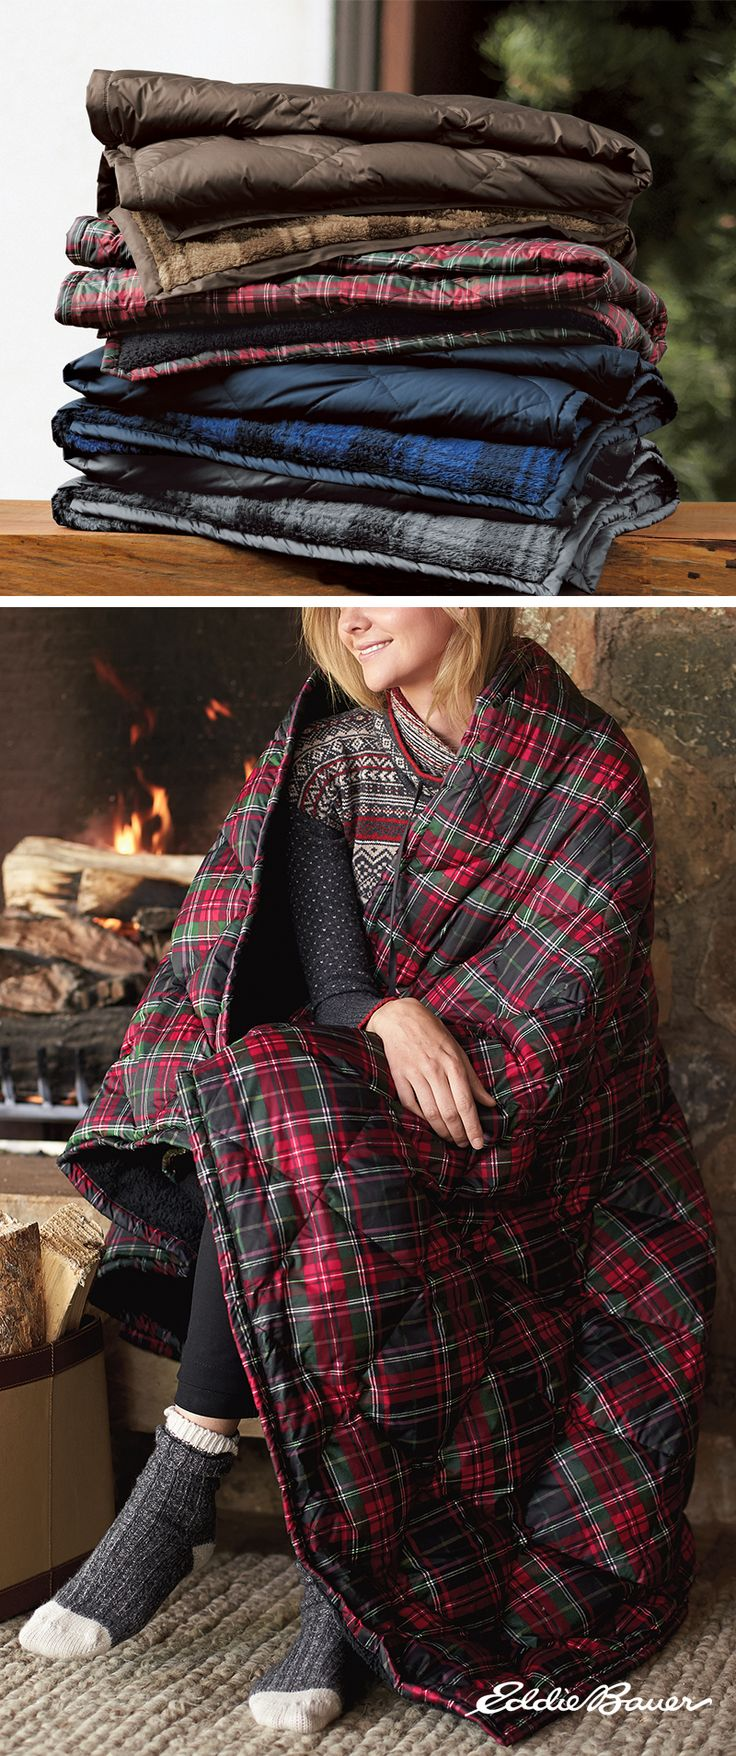 t's ultralight, and at the same time, ultrawarm. Insulated with 650 fill Premium Down, our throw is perfect for the living room, guest room, or anywhere else someone wants to relax after a day full of outdoor activities. Soft polyester shell is smooth on one side, fleece on the other. Comes gift-ready, rolled and tied with a ribbon.